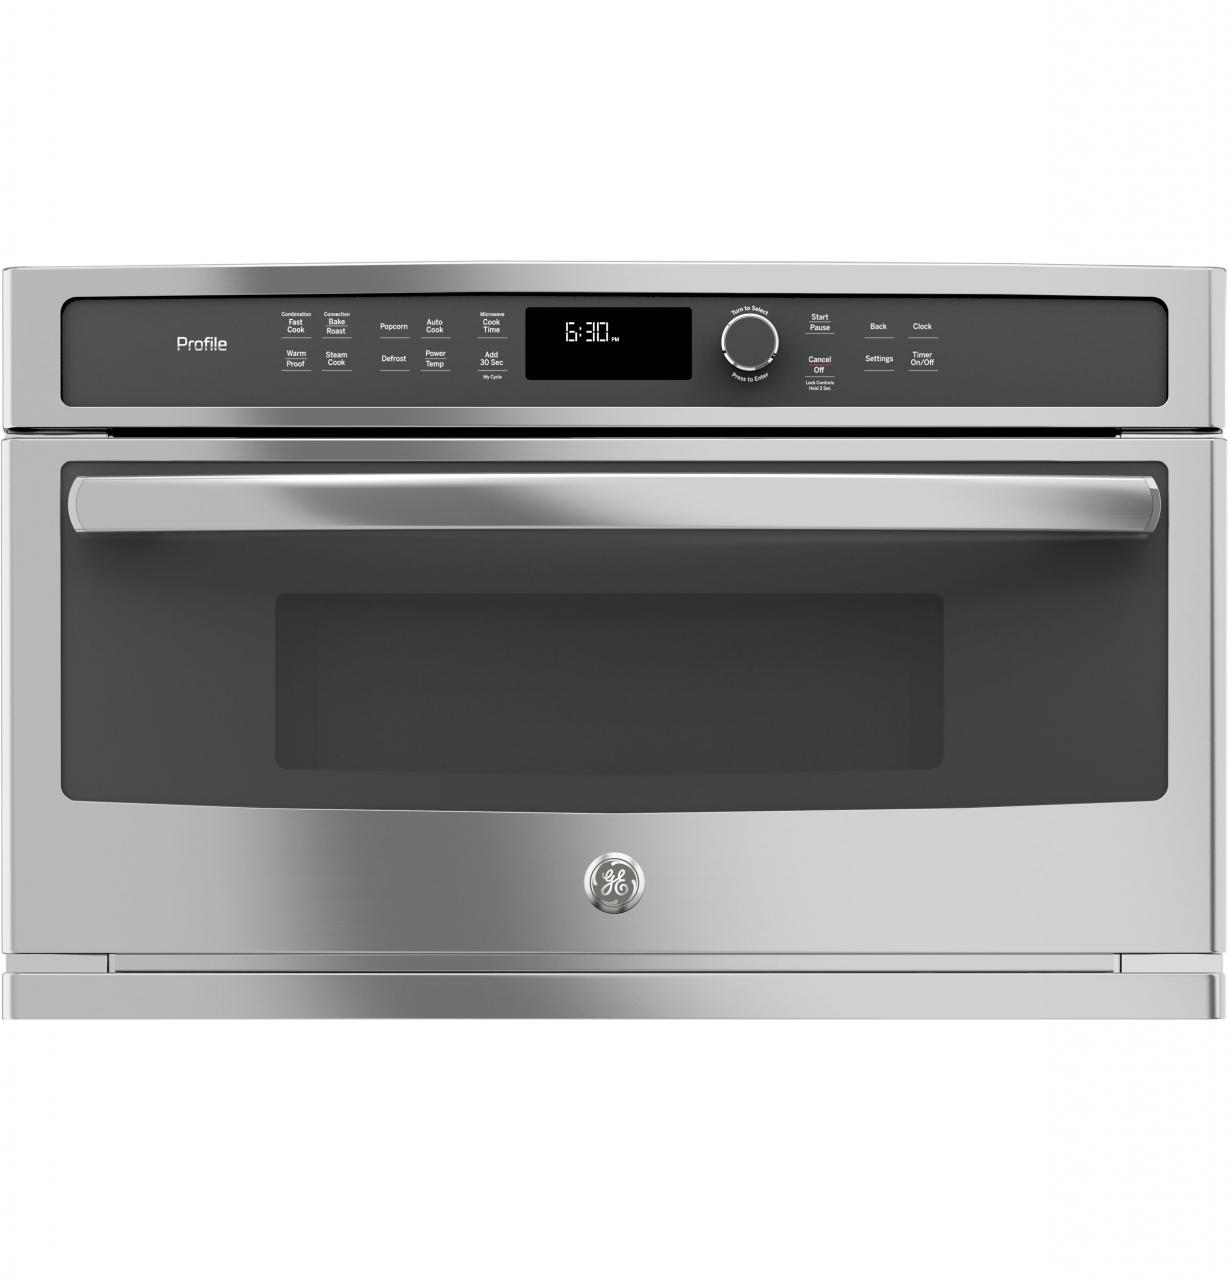 Ge Profile Series Built In Microwave Convection Oven Stainless Steel Pwb7030slss